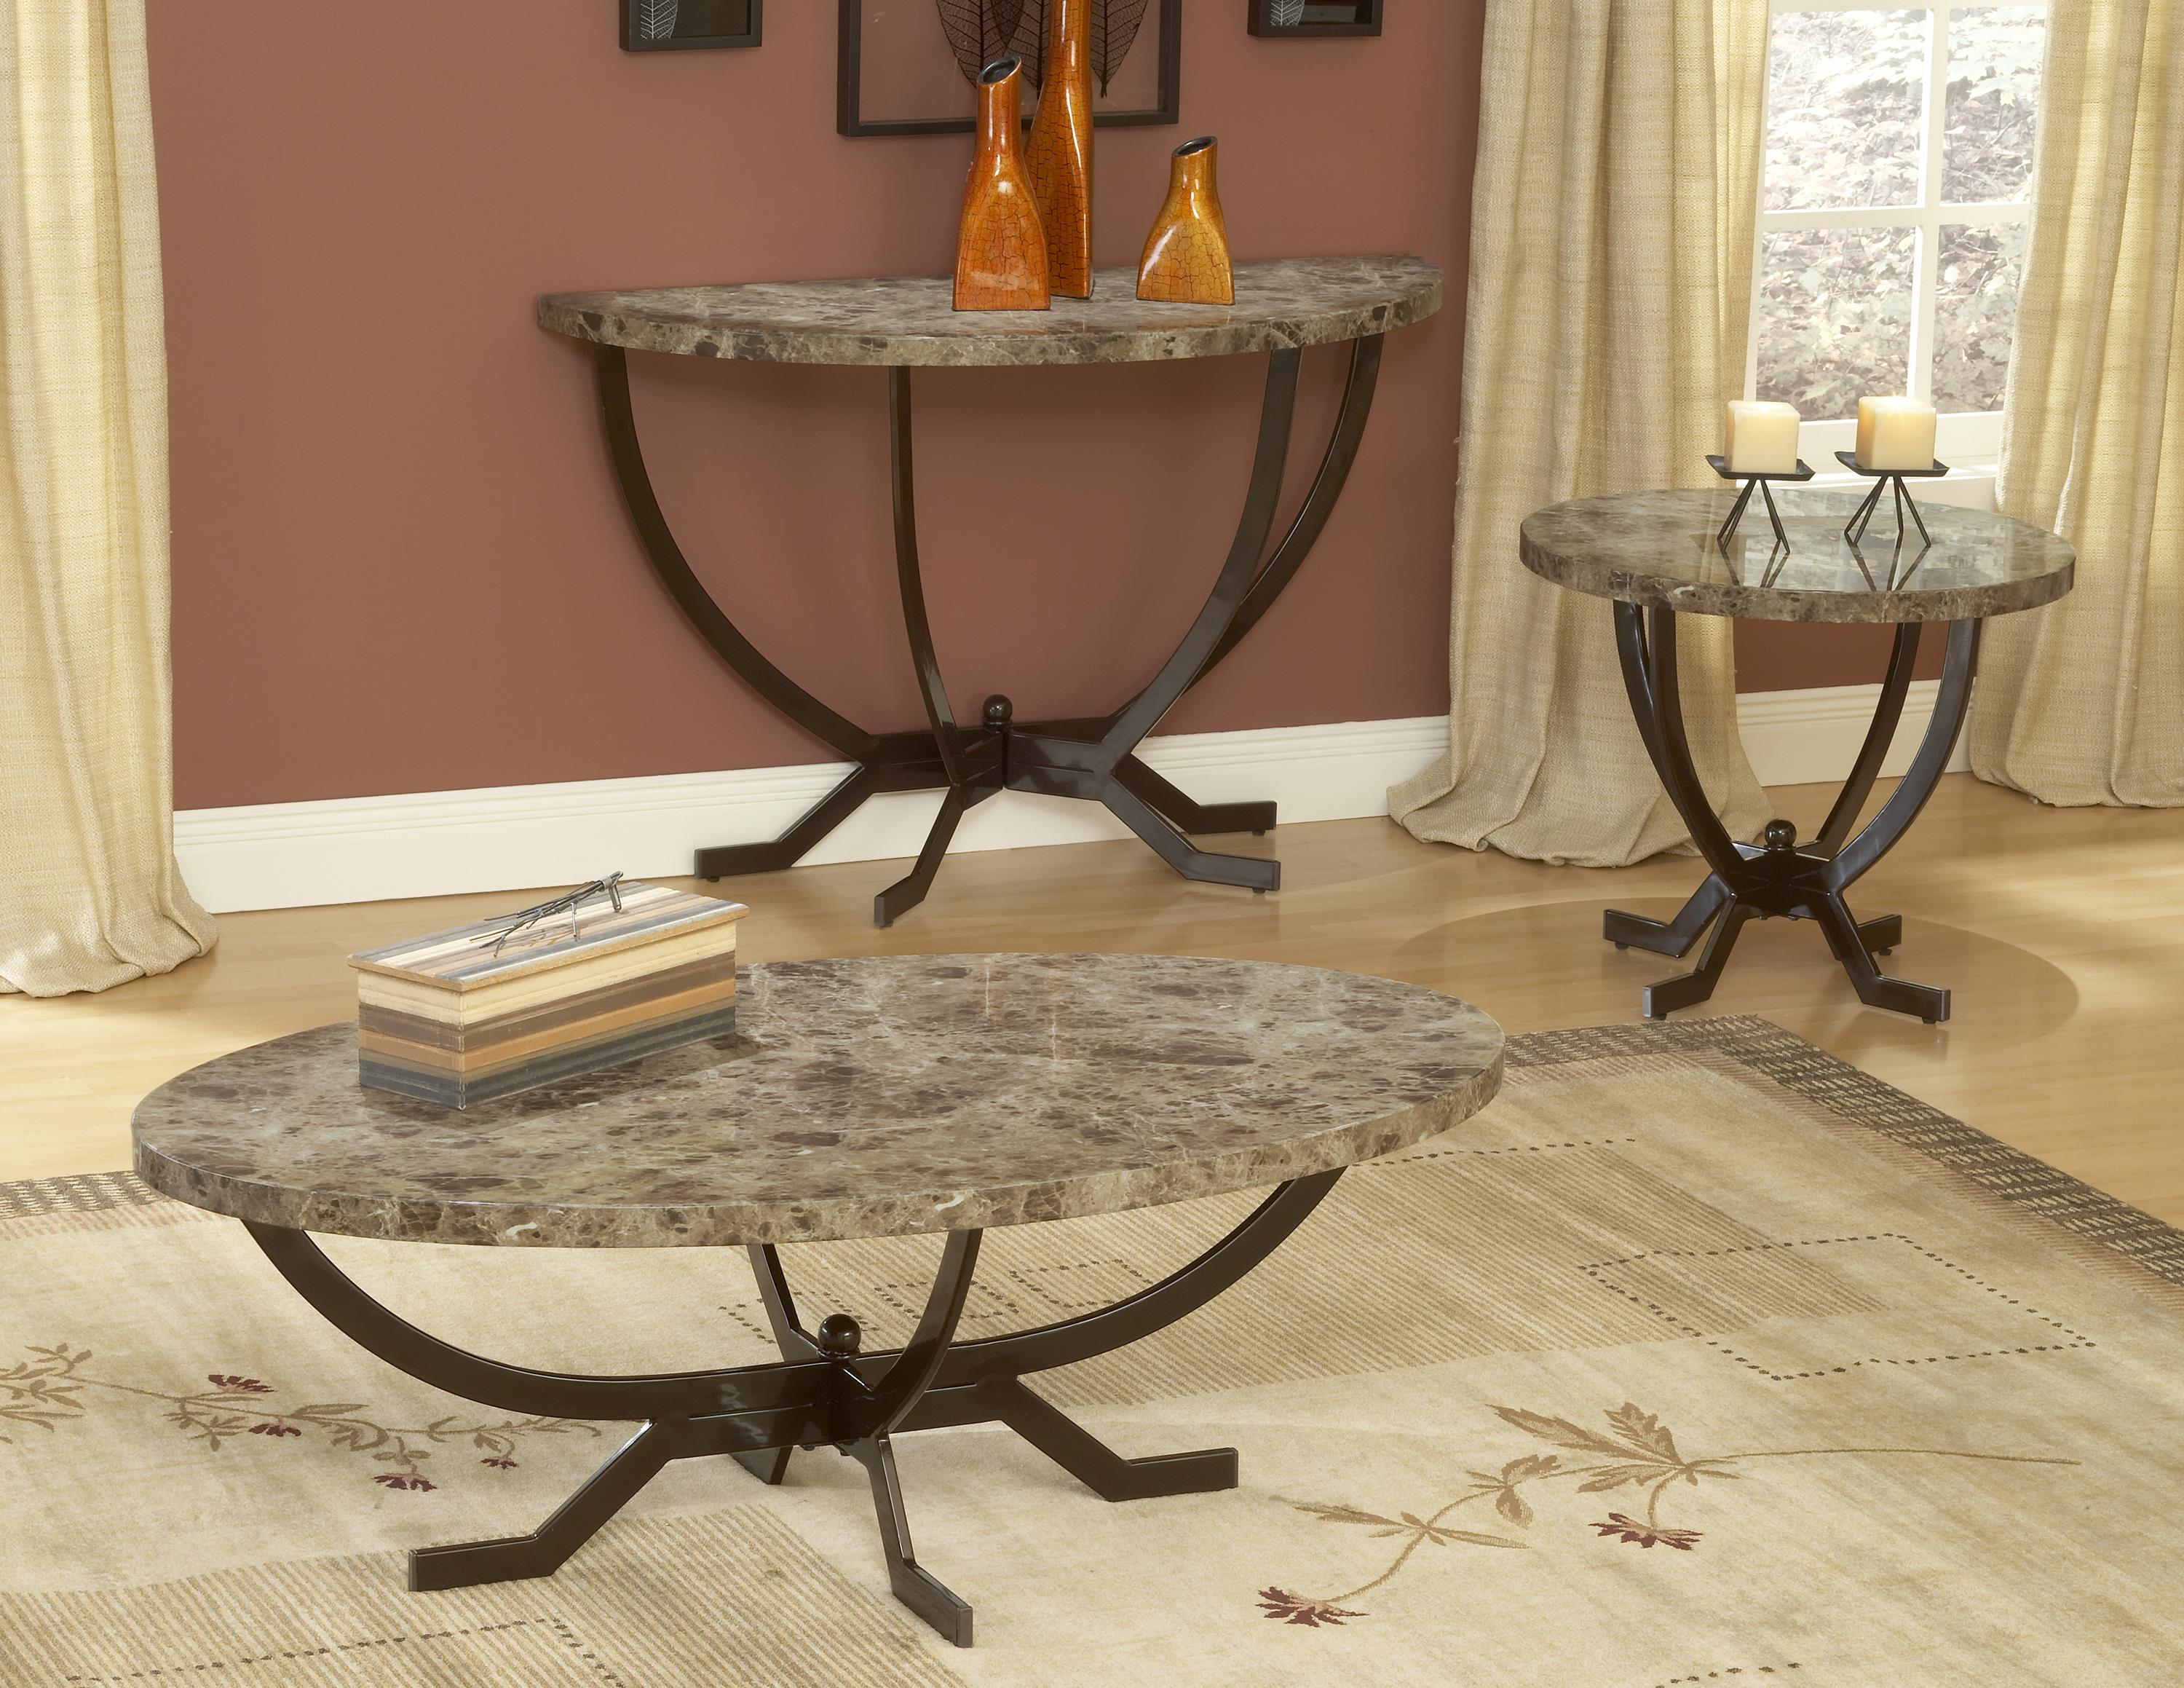 Hillsdale Occasional Tables Monaco Coffee Table - Item Number: 4142-880